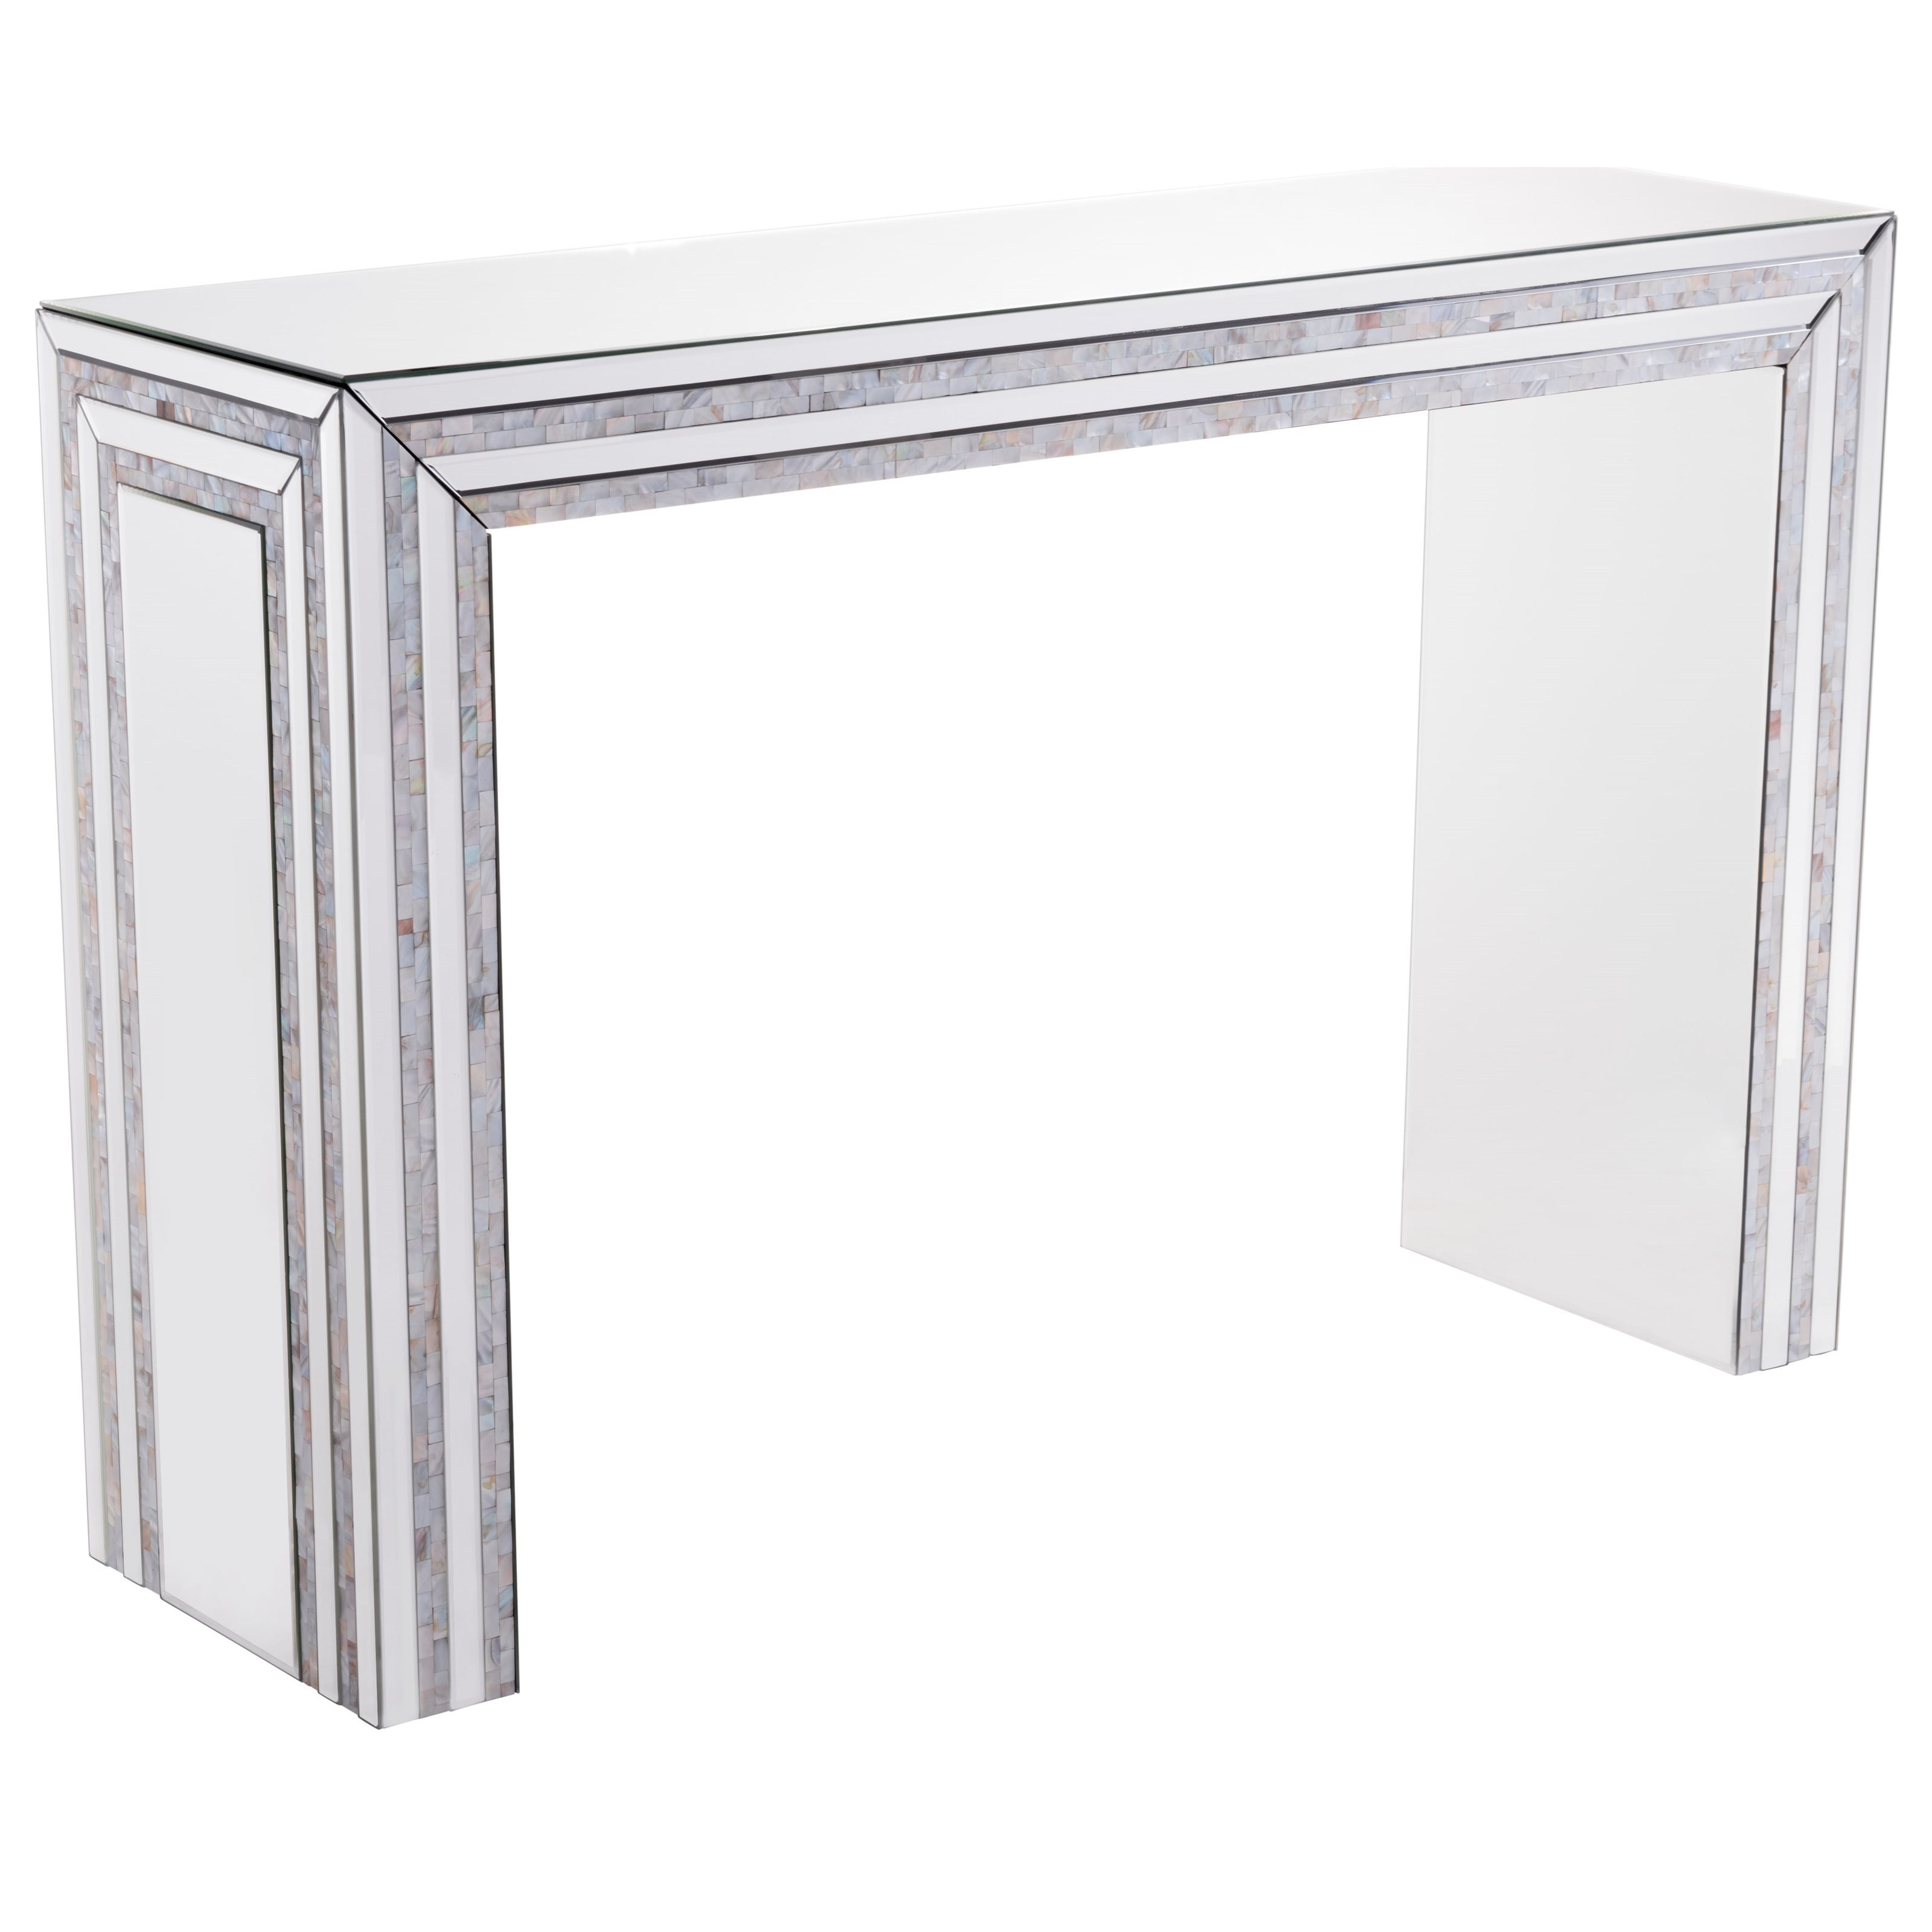 Zuo Accent Tables Mop Console Table - Item Number: A10417